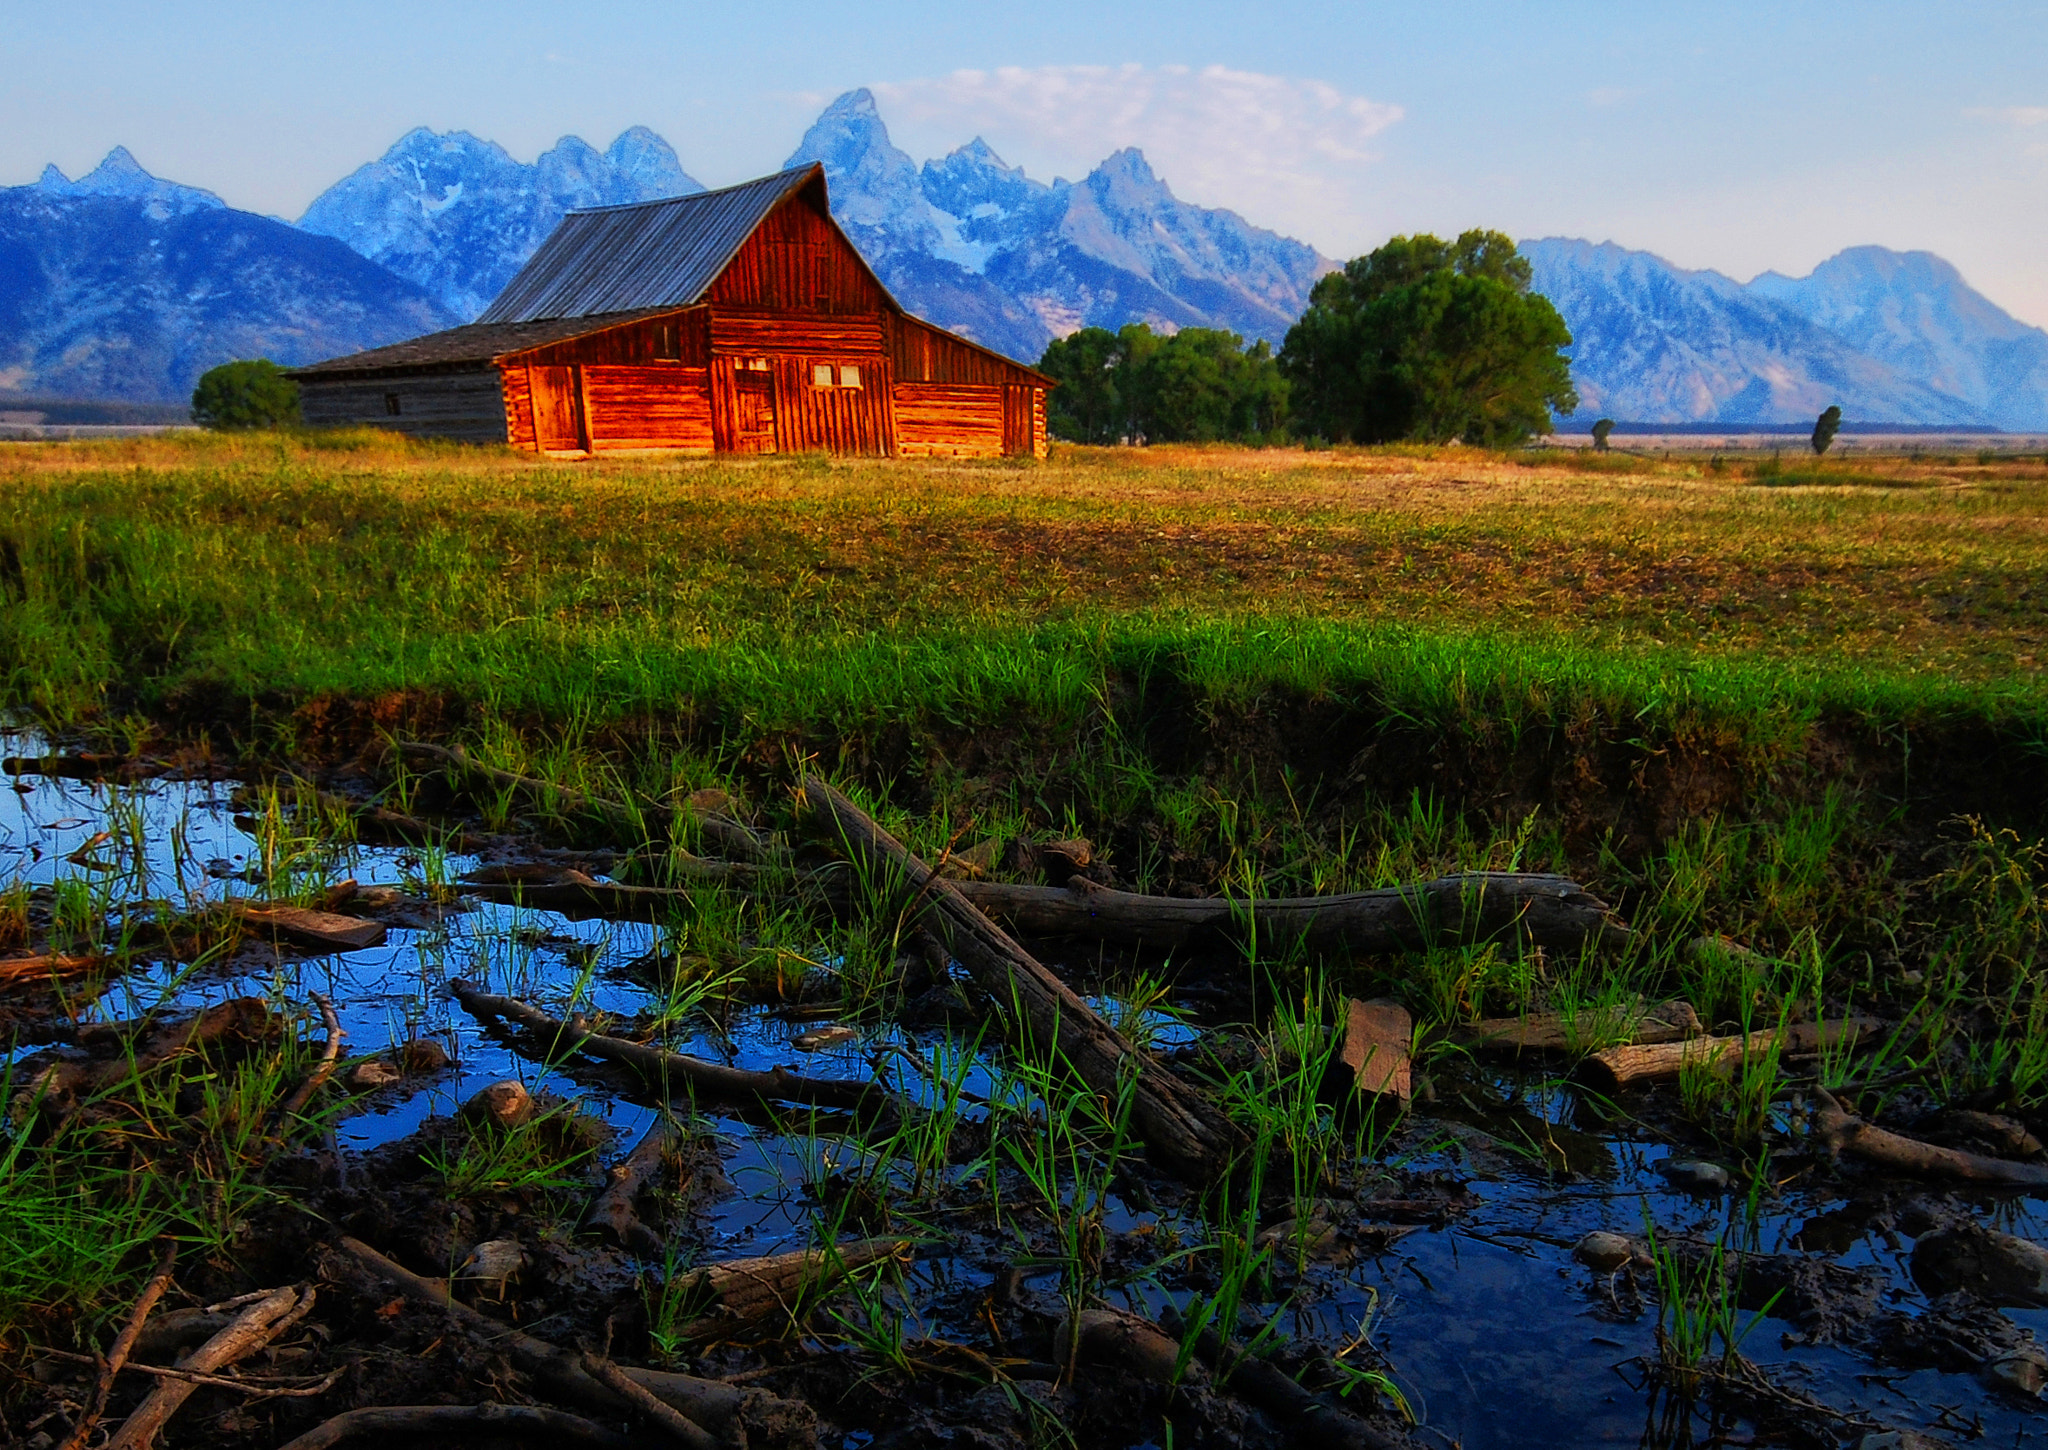 Photograph Soft Light at the Barn by Jeff Clow on 500px